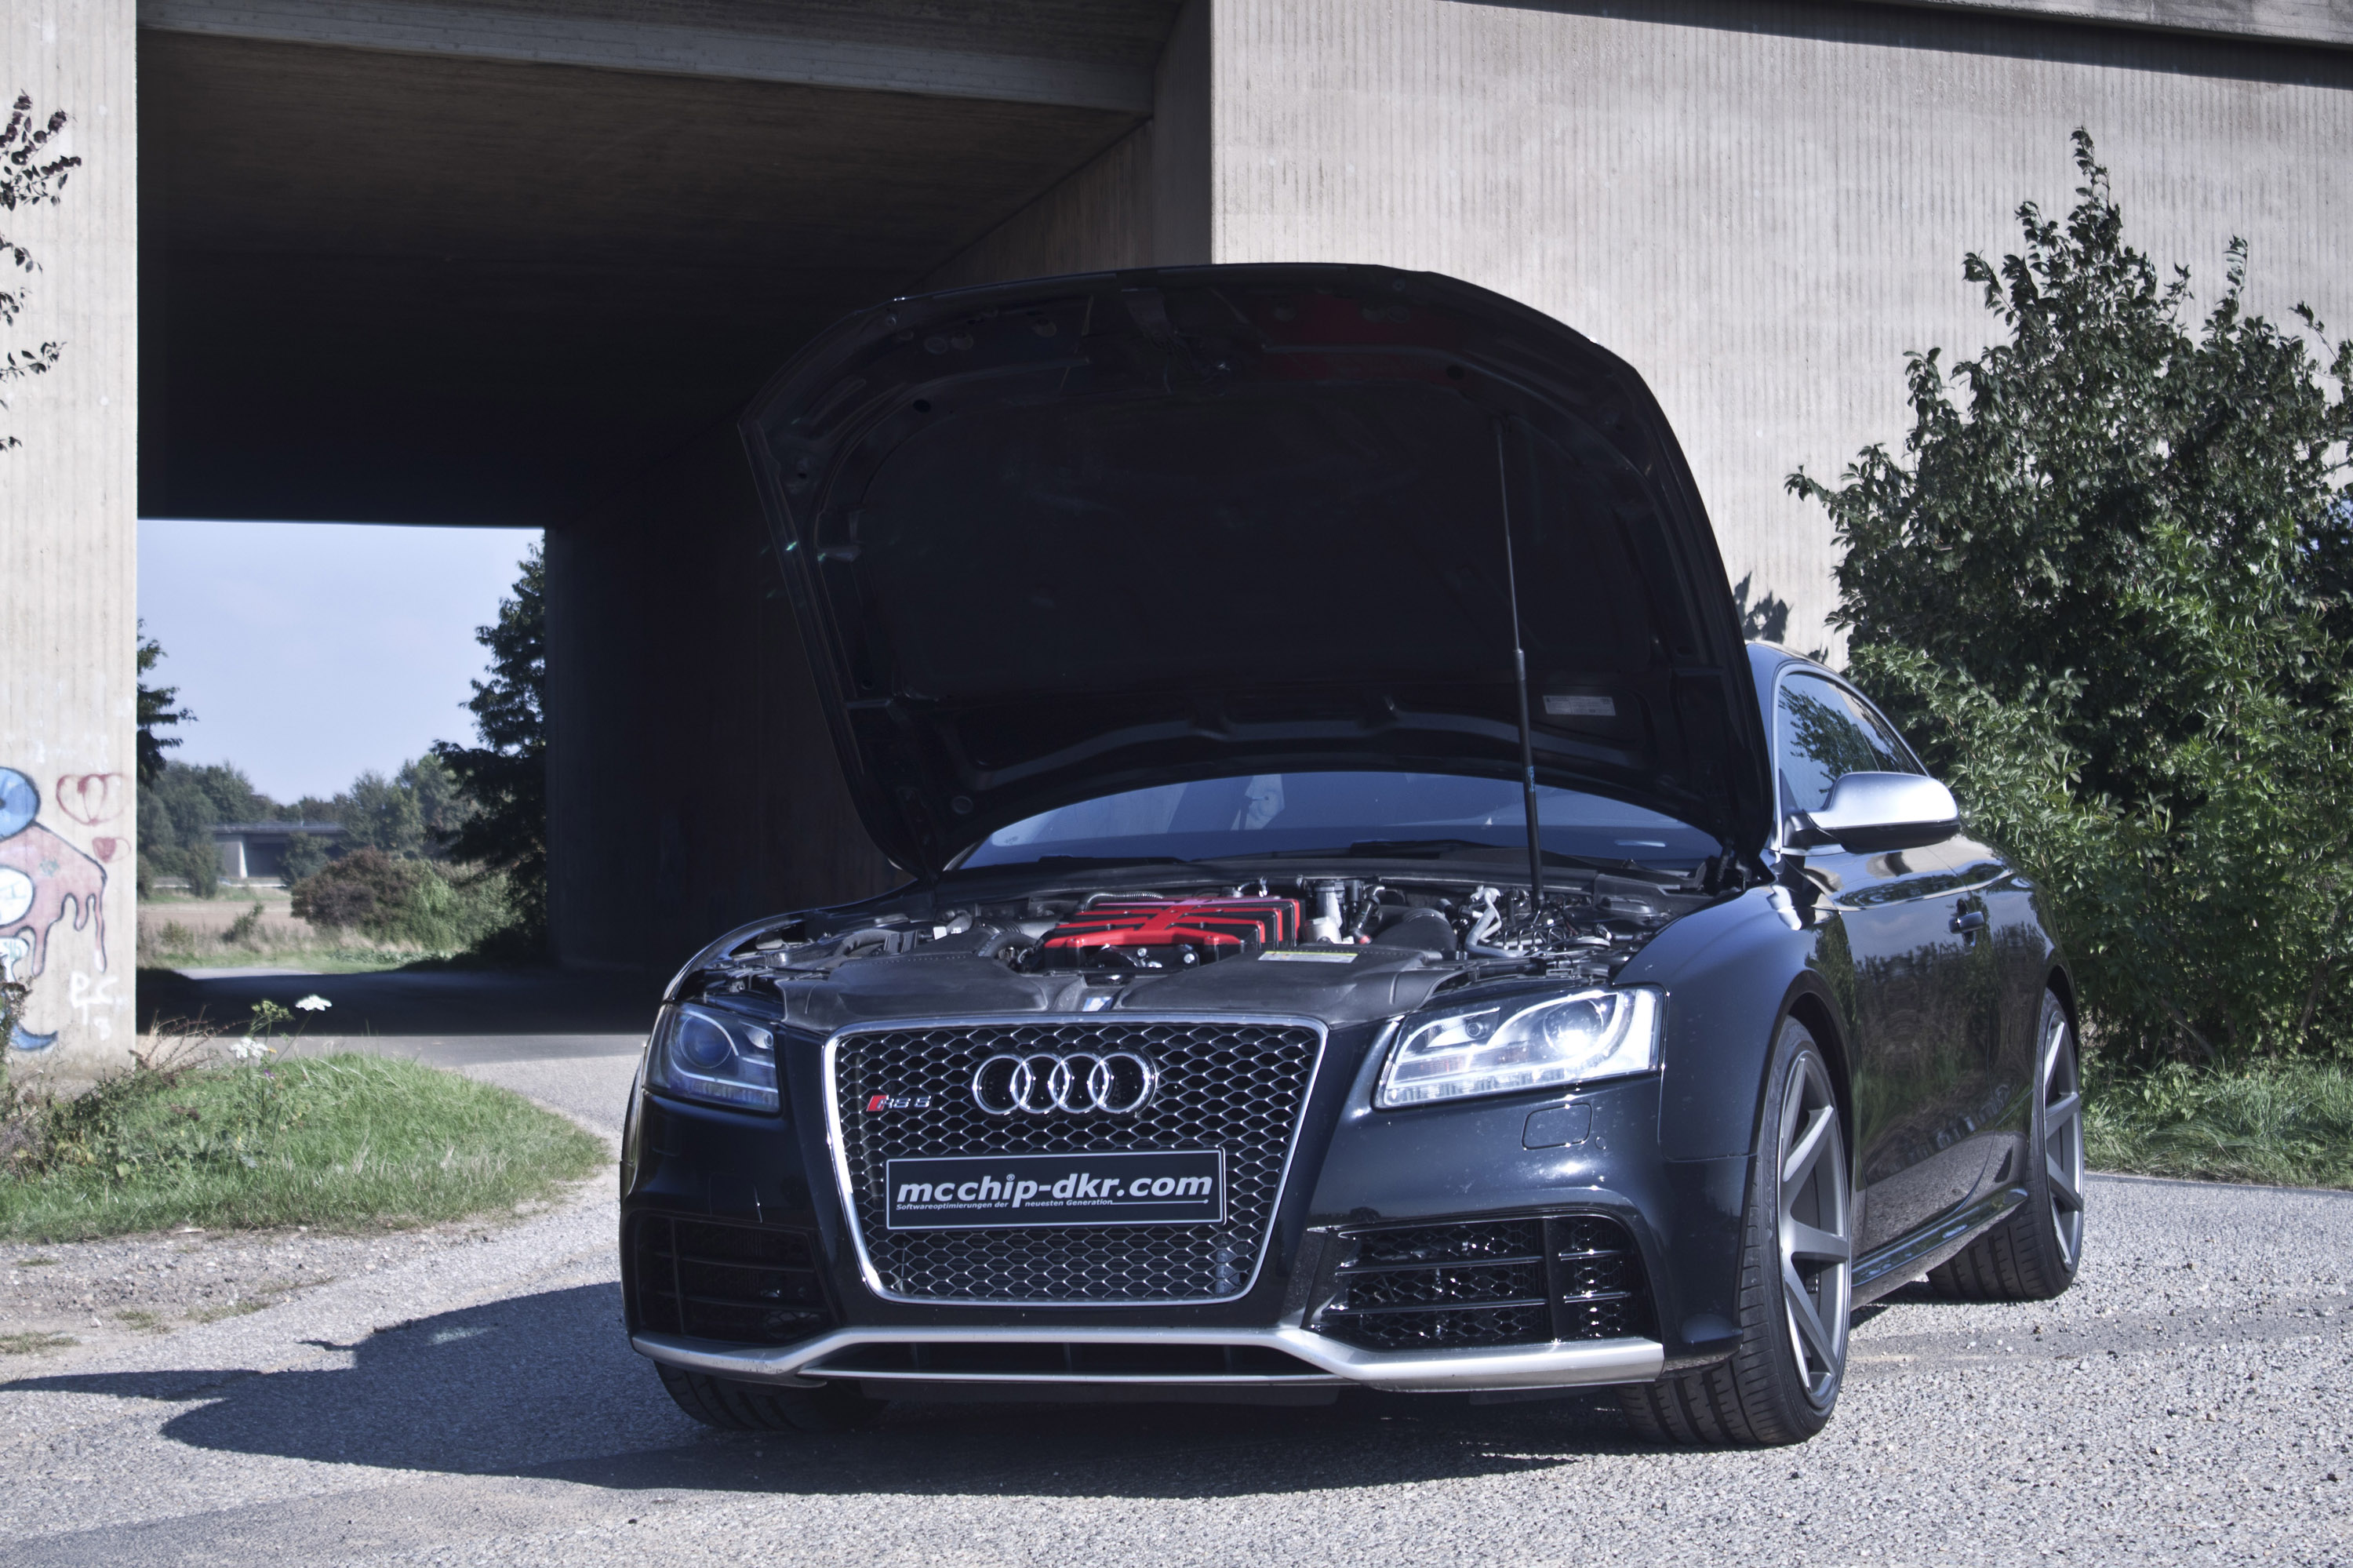 Audi RS5 McChip DKR тюнинг